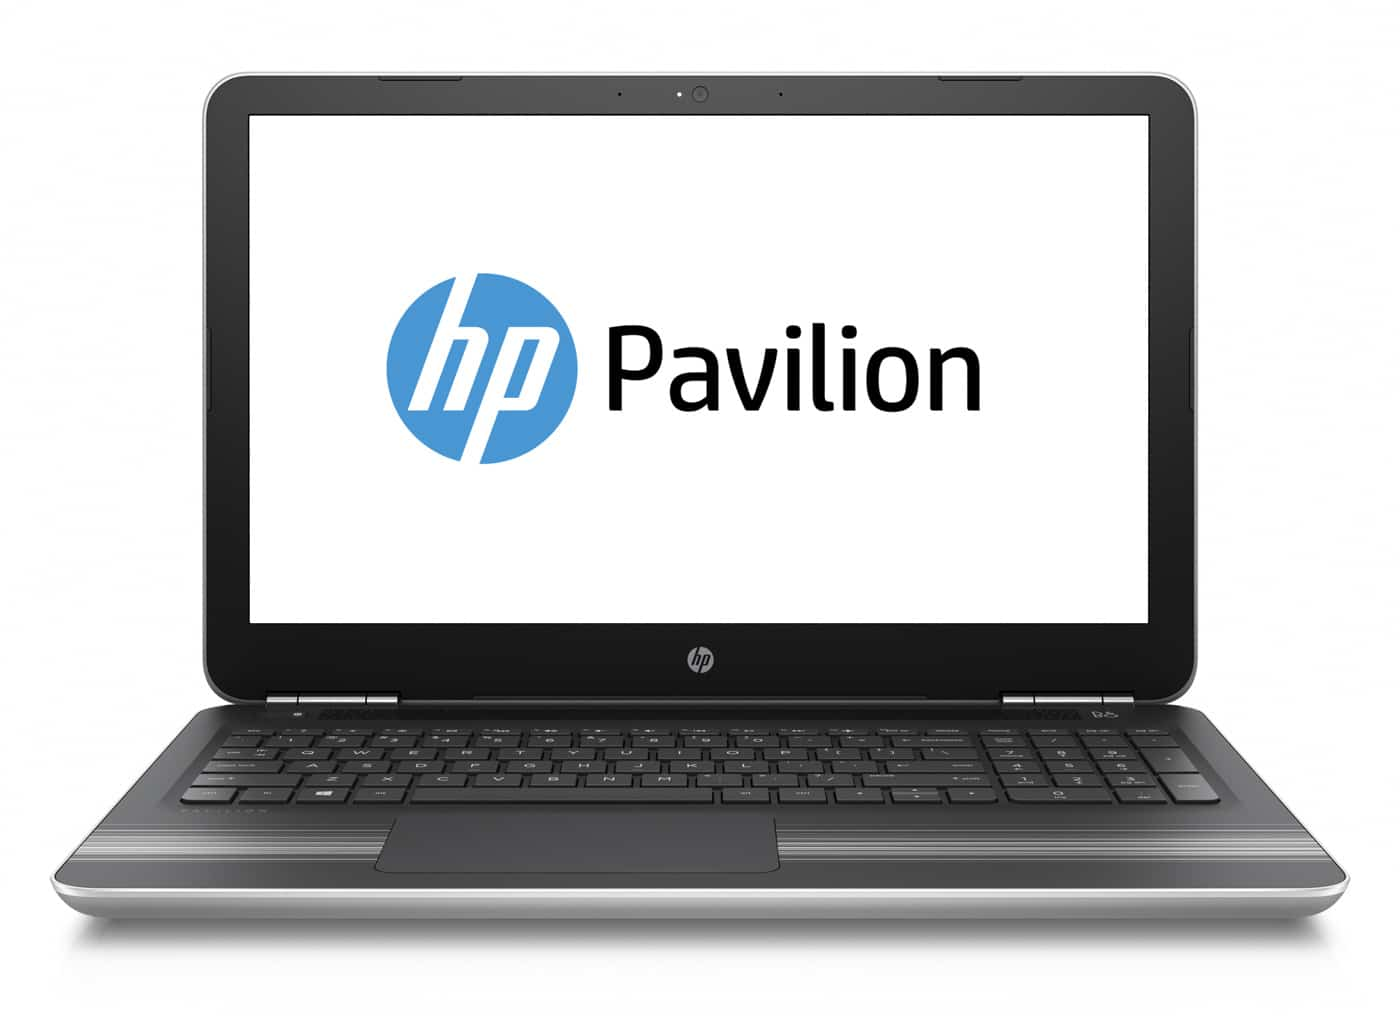 "HP Pavilion 15-au100nf à 699€, PC portable 15"" Kaby Lake i5 SSD256 940MX 8Go"